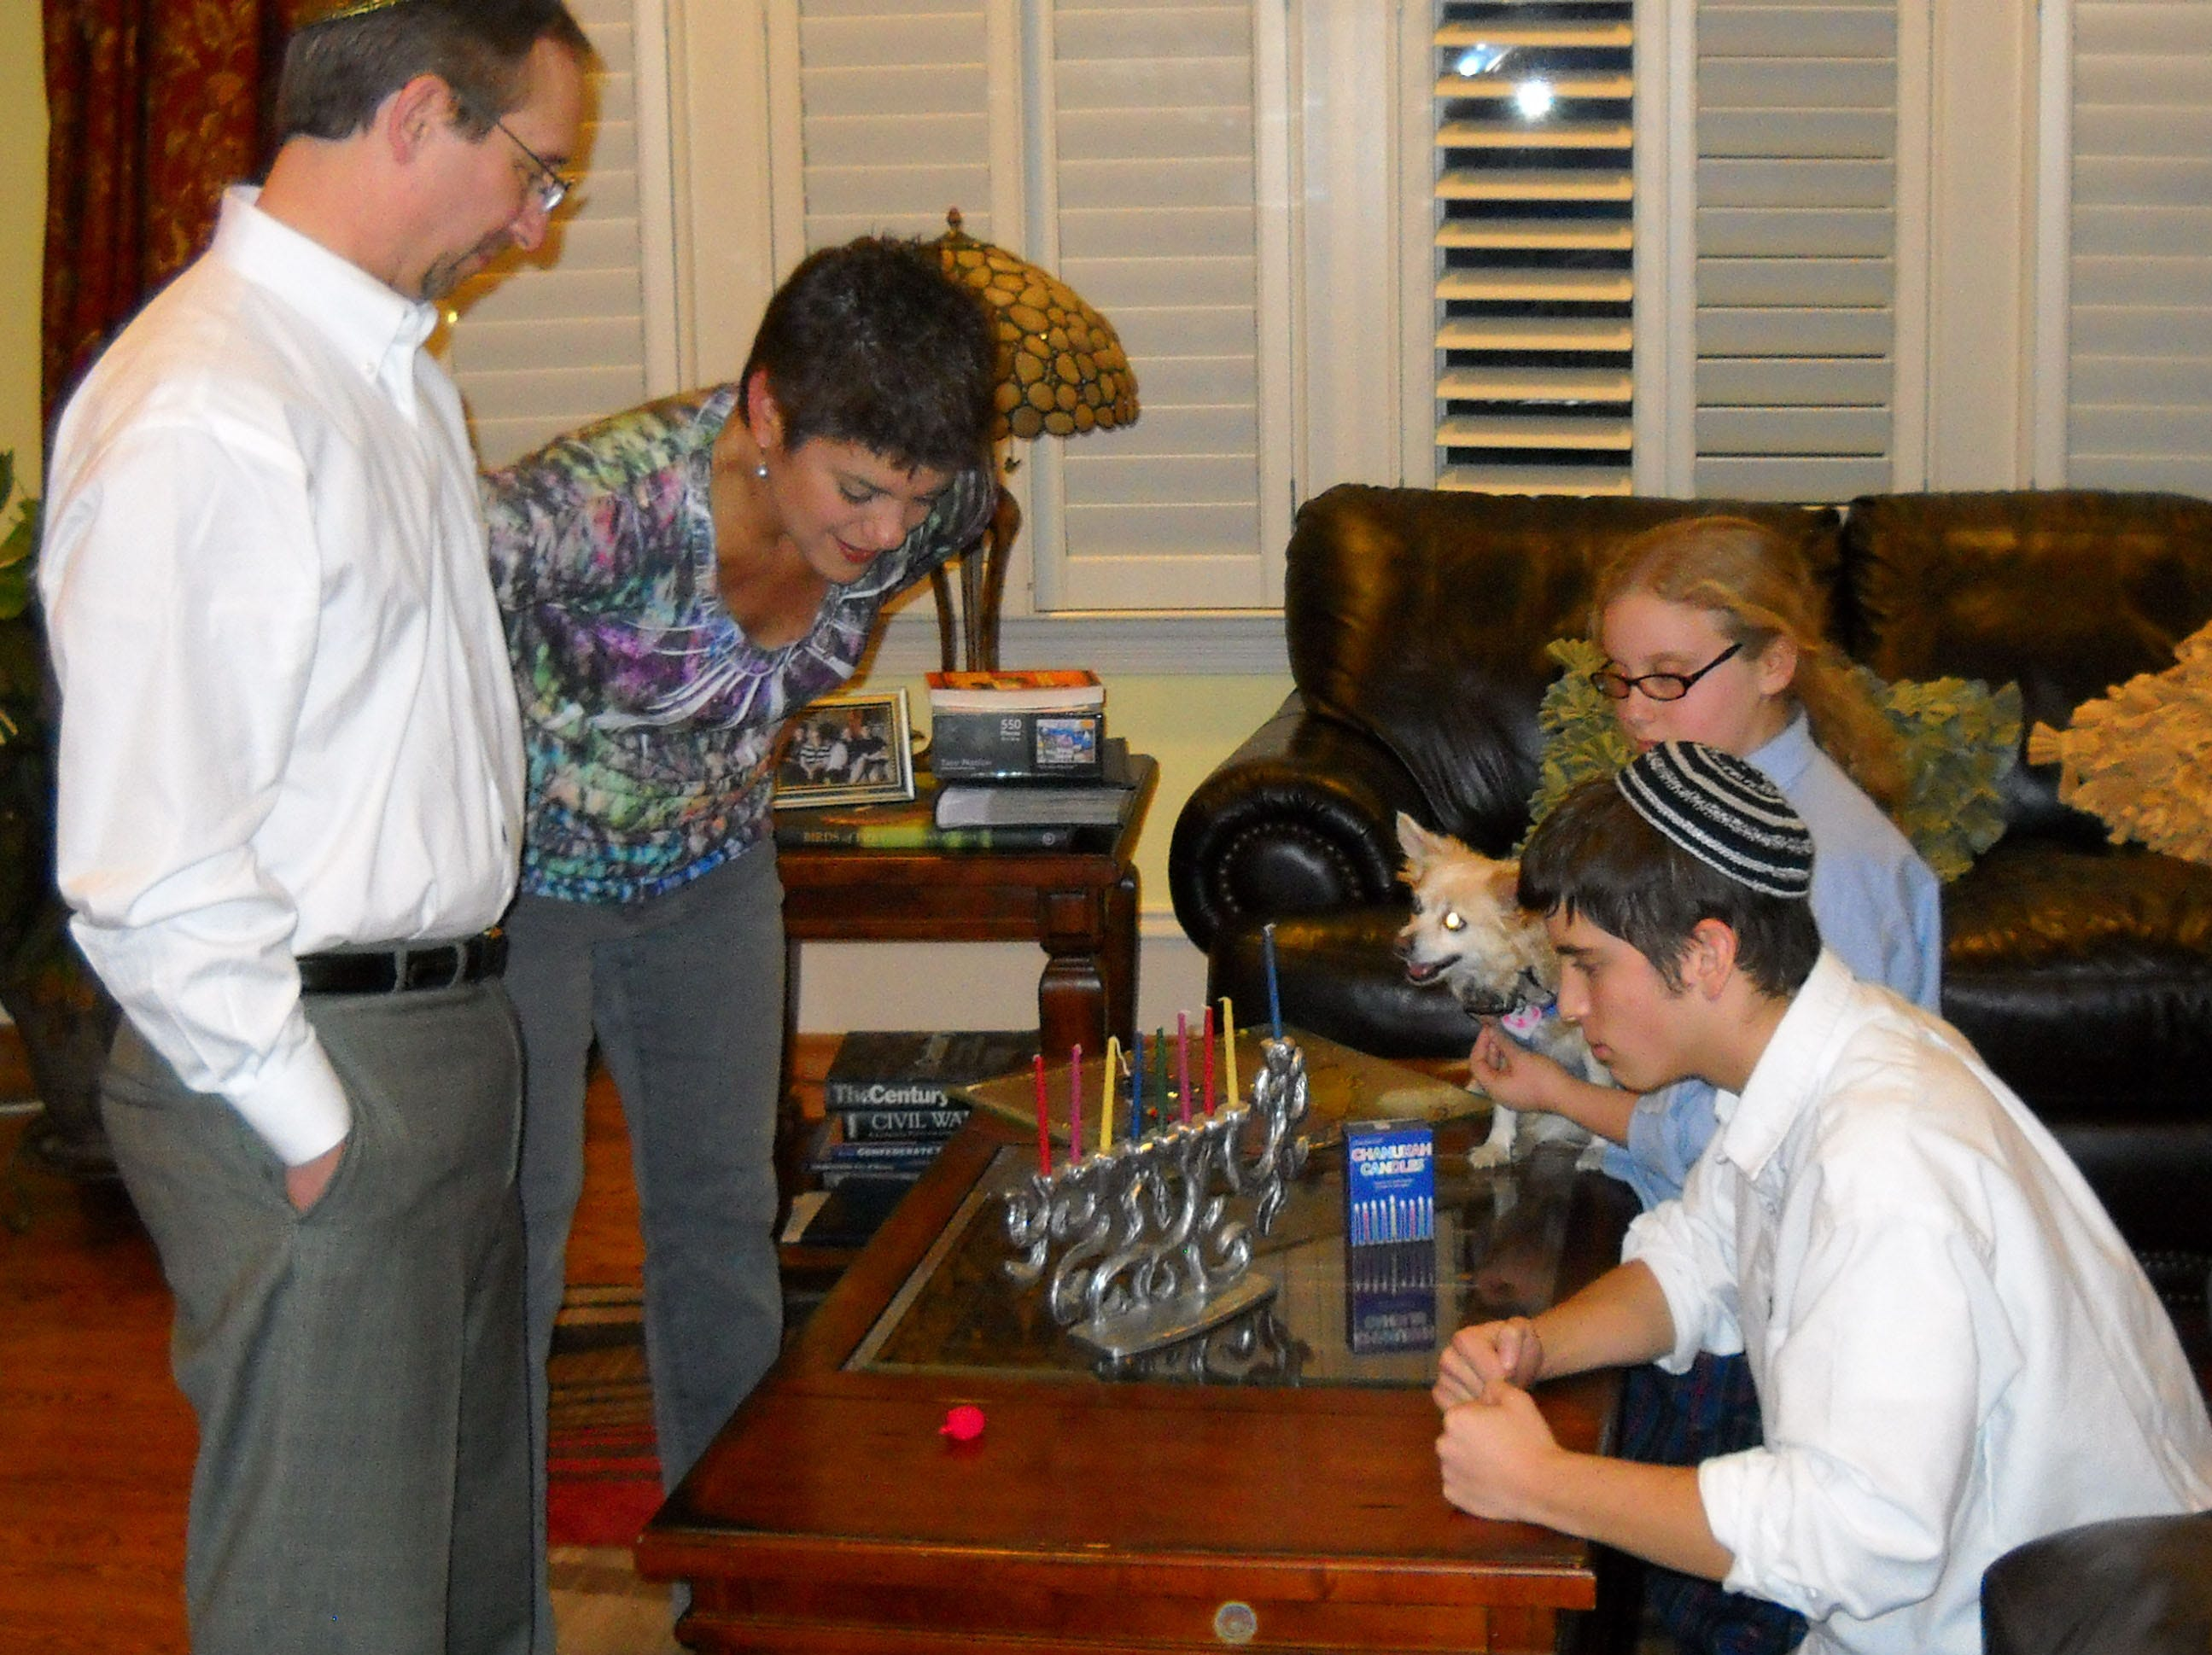 Michael Dryzer spins the dreidel, a four-sided top used in a game during the Hanukkah season, while his family watches.